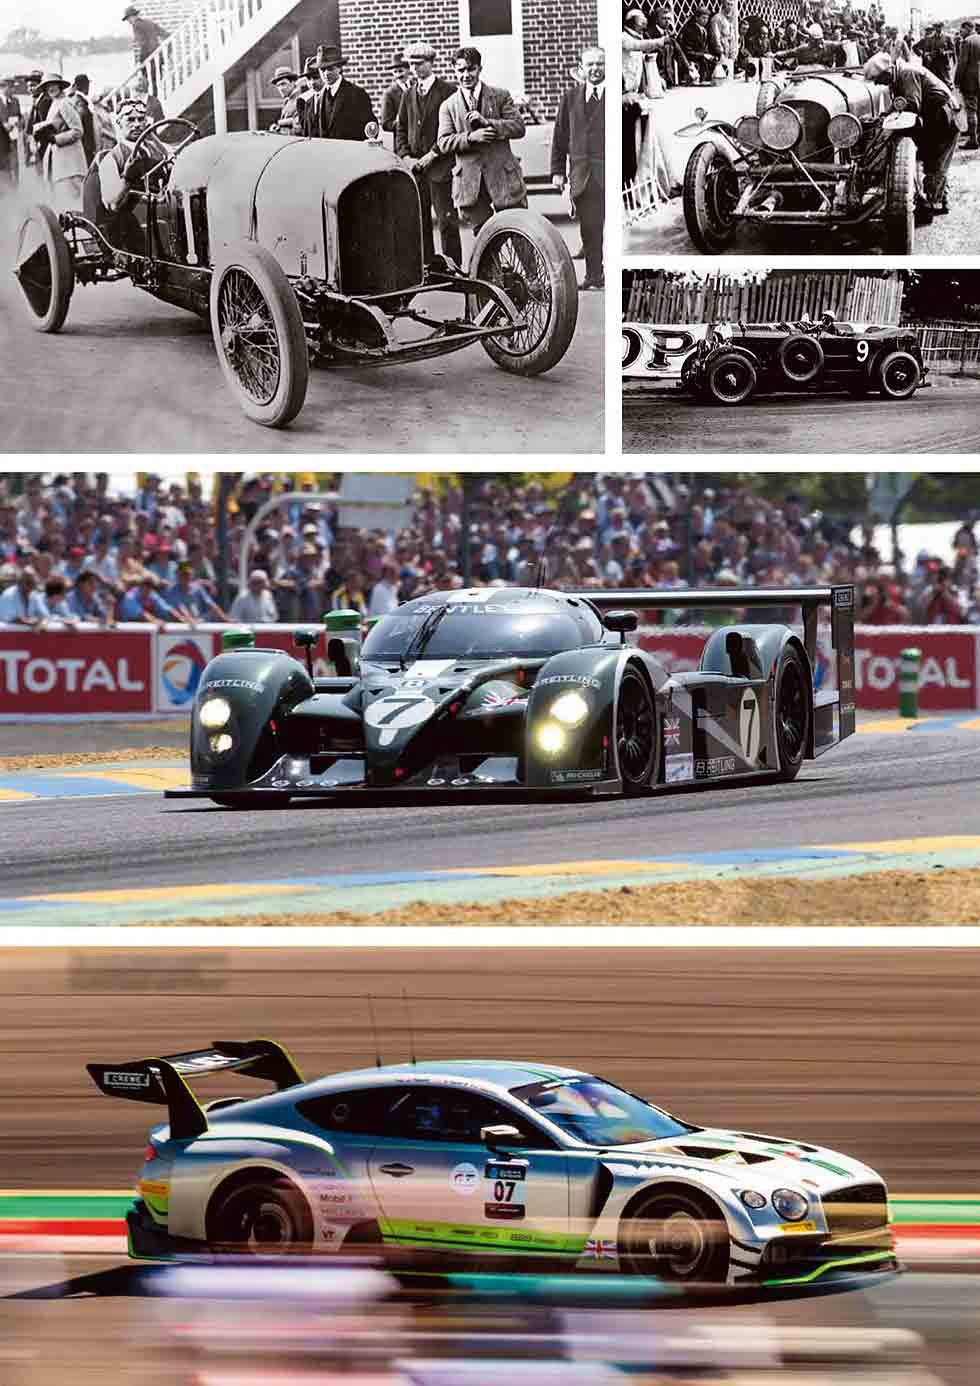 BENTLEY'S RACING PEDIGREE